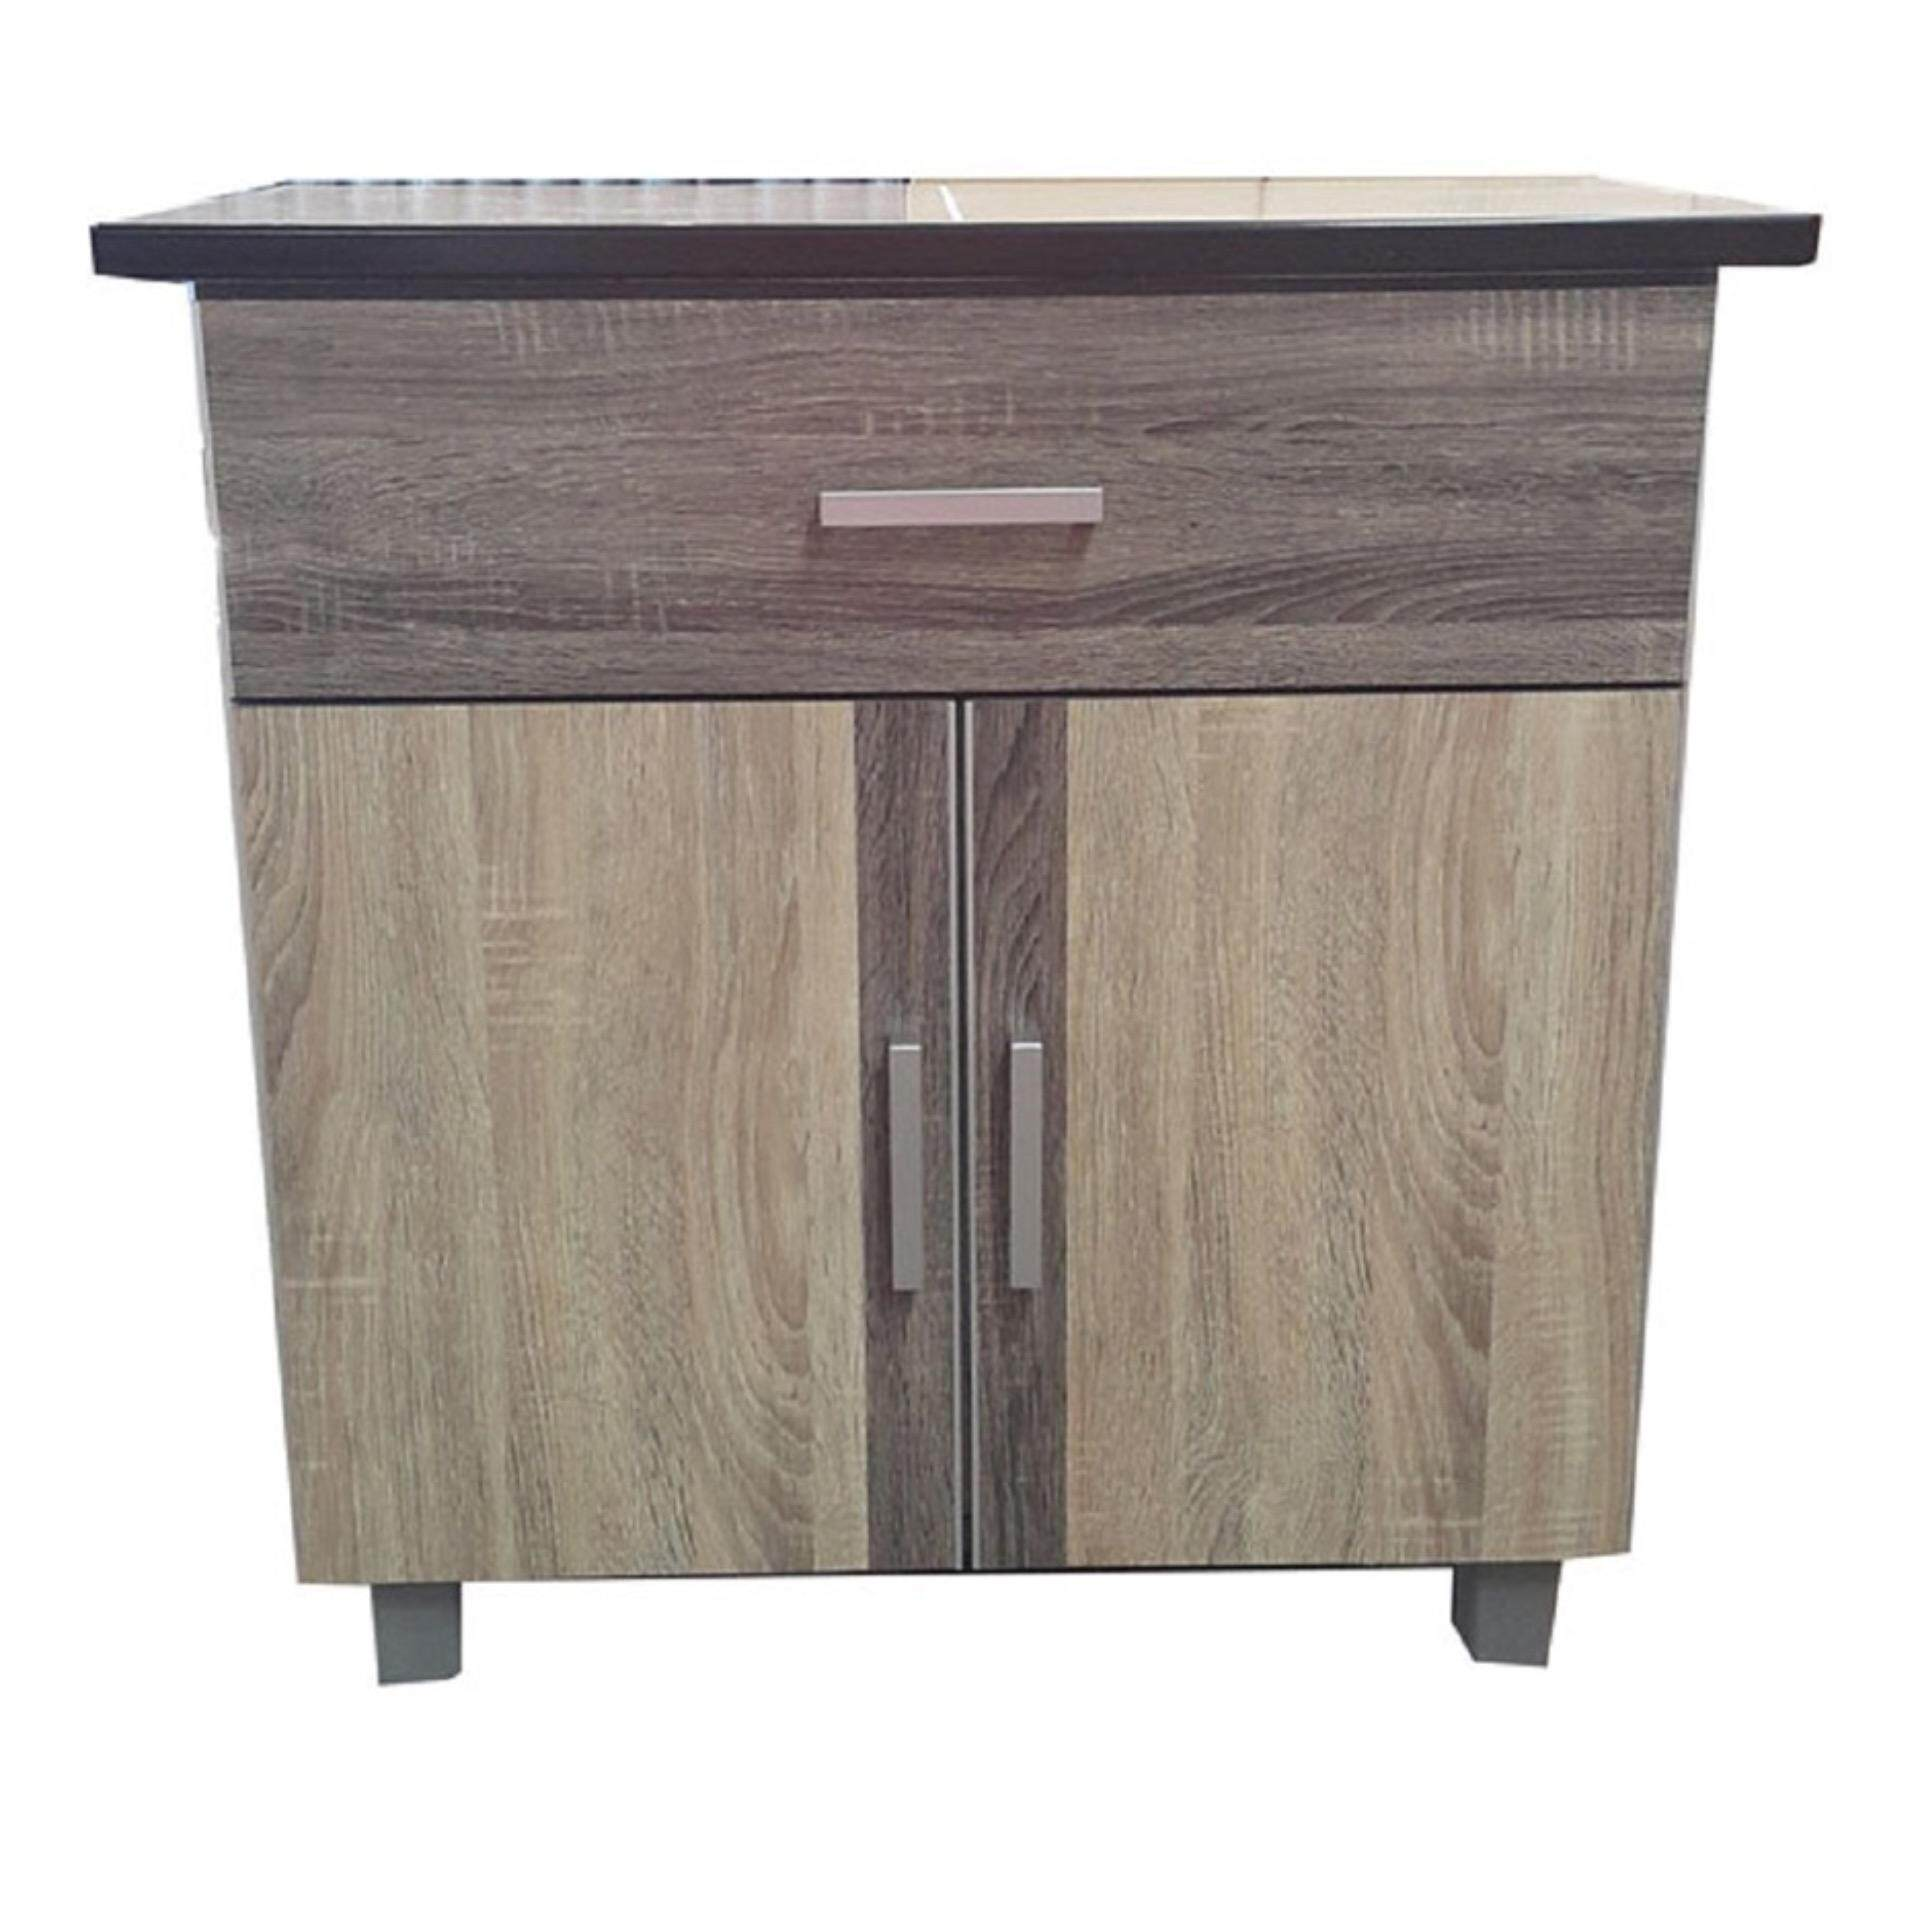 Ready-Fixed 2.5 Feet Kitchen Cabinet With Mosaic Top Pre Order